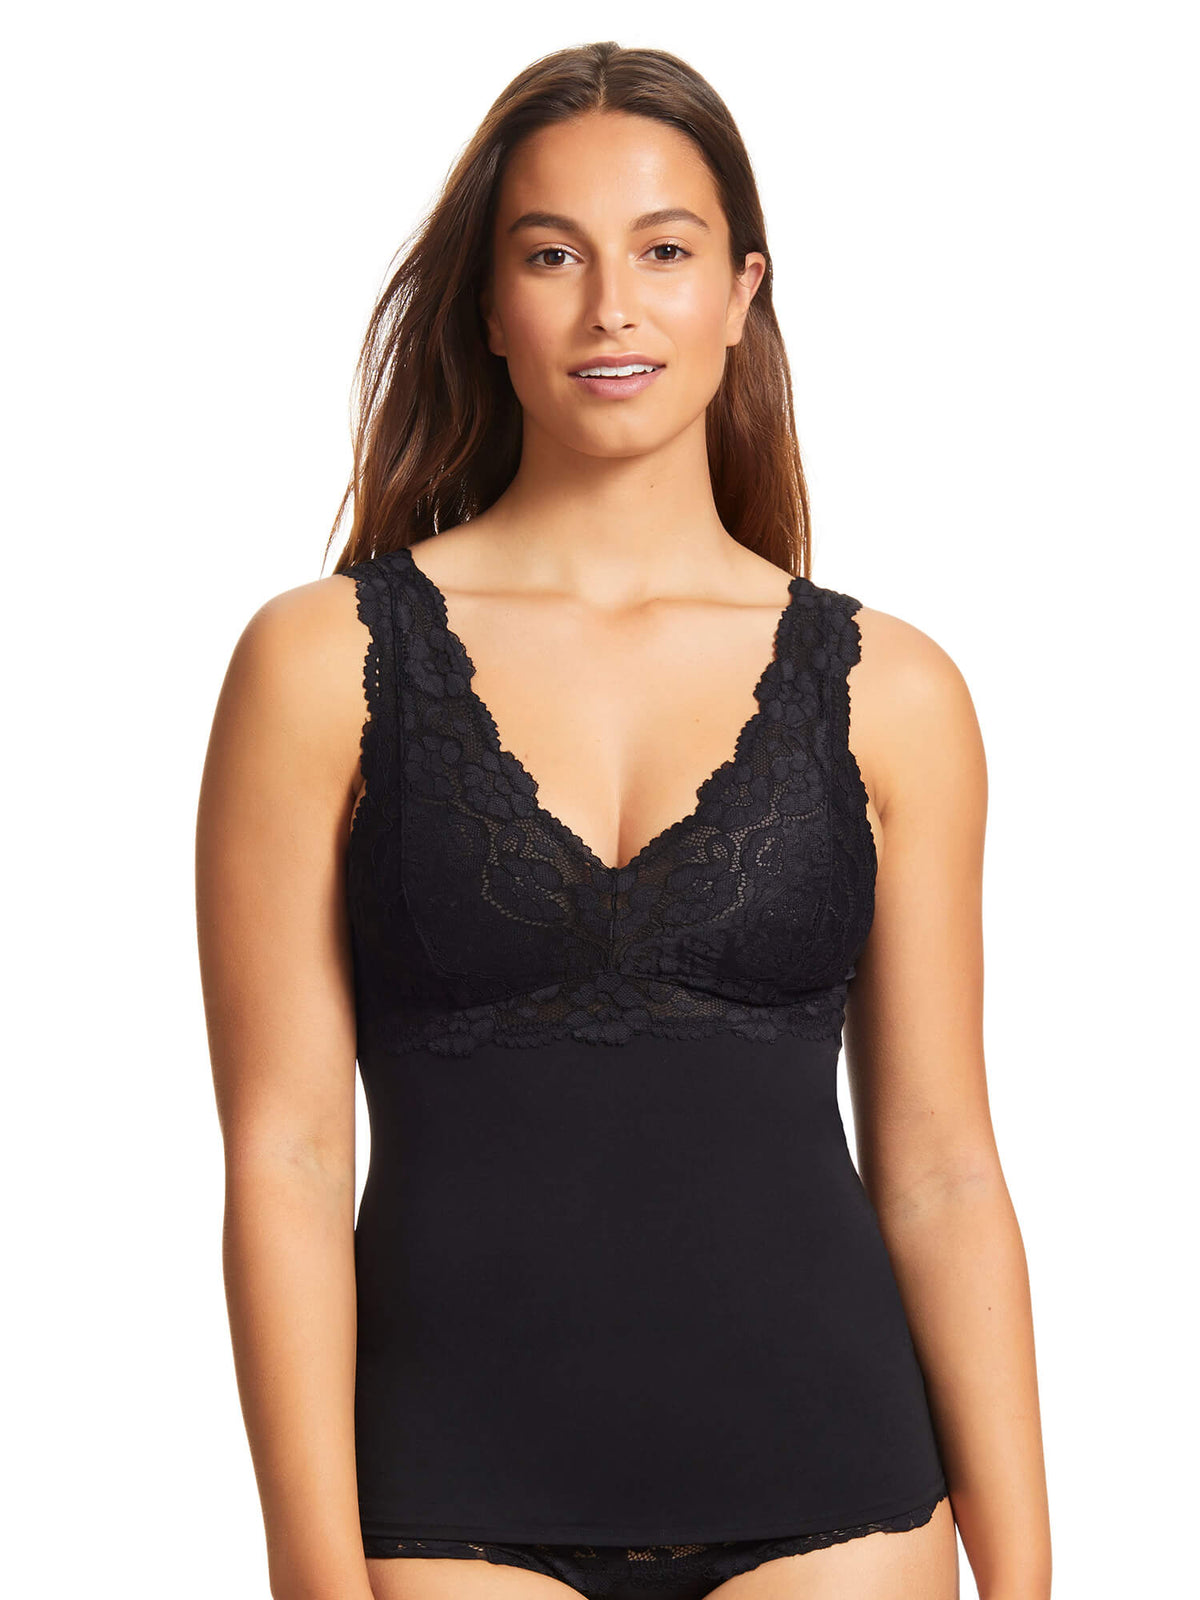 Daily Essentials Helen Micro & Lace Cami (465)